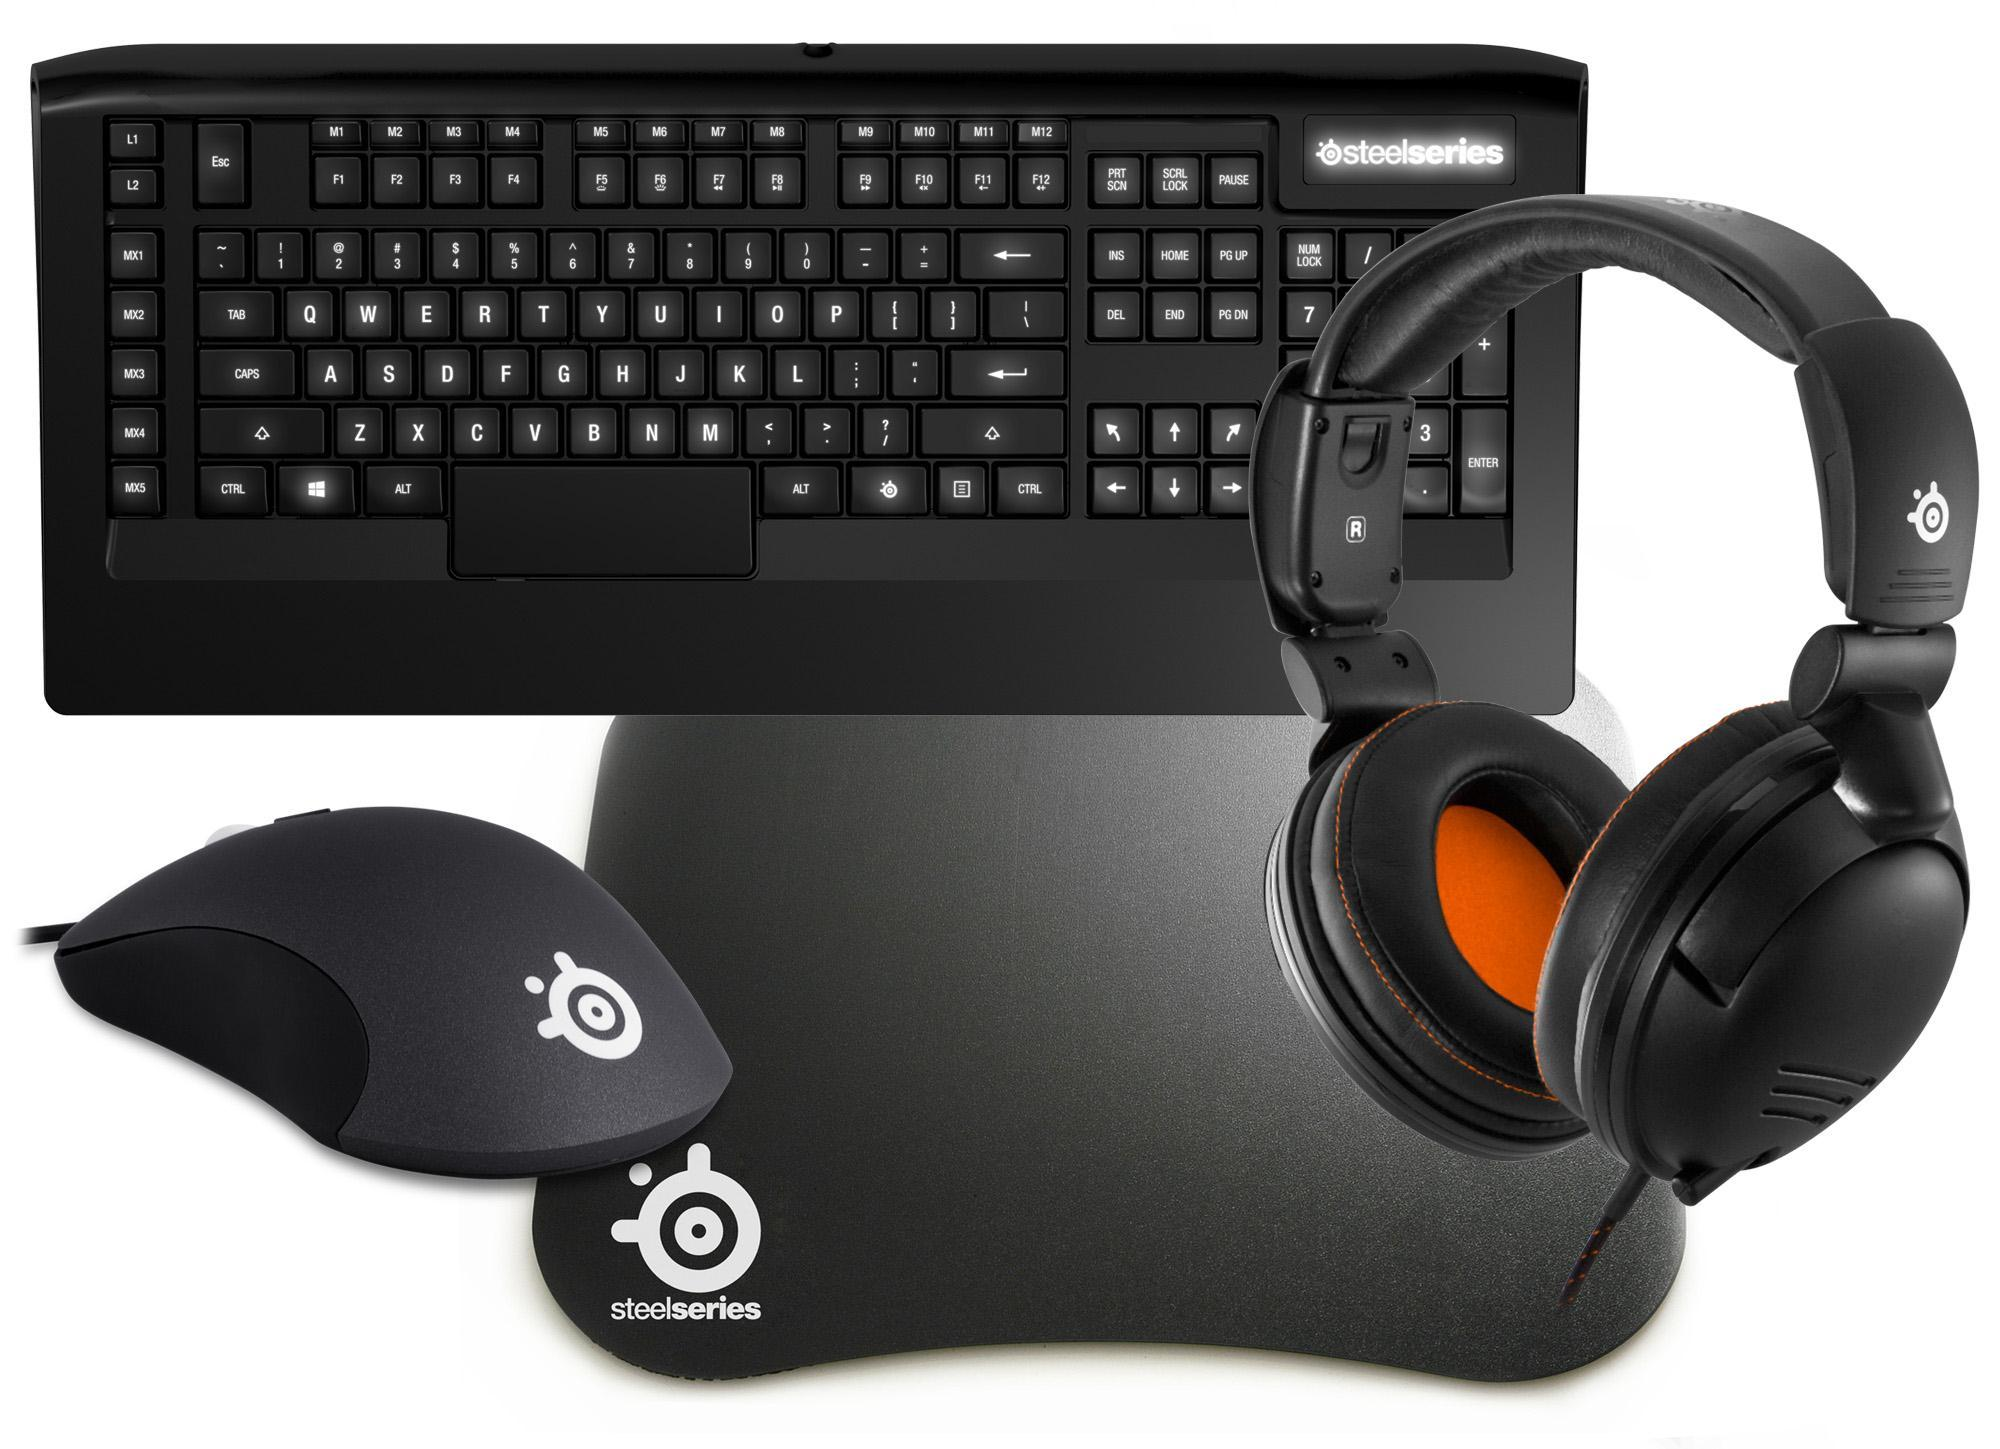 SteelSeries Mega Bundle 1 - Includes: Mouse Keyboard Headset & Surface